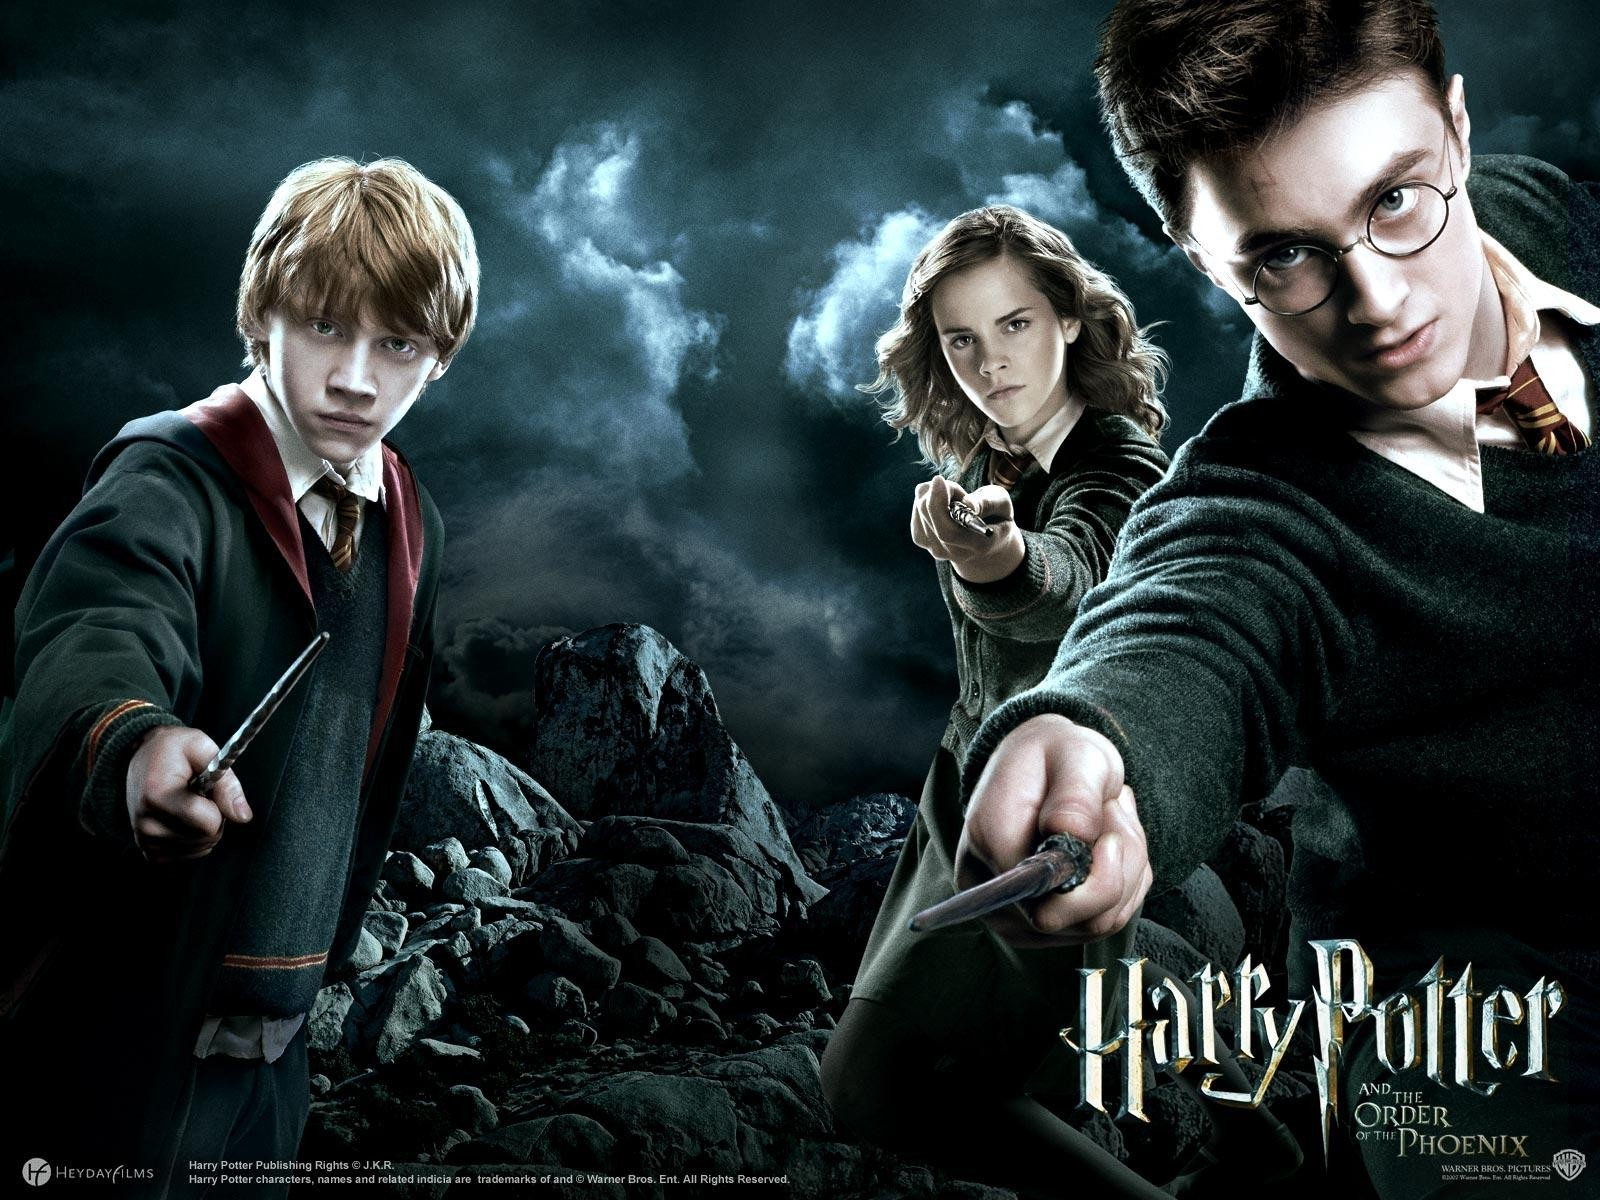 The Weapons of Harry Potter